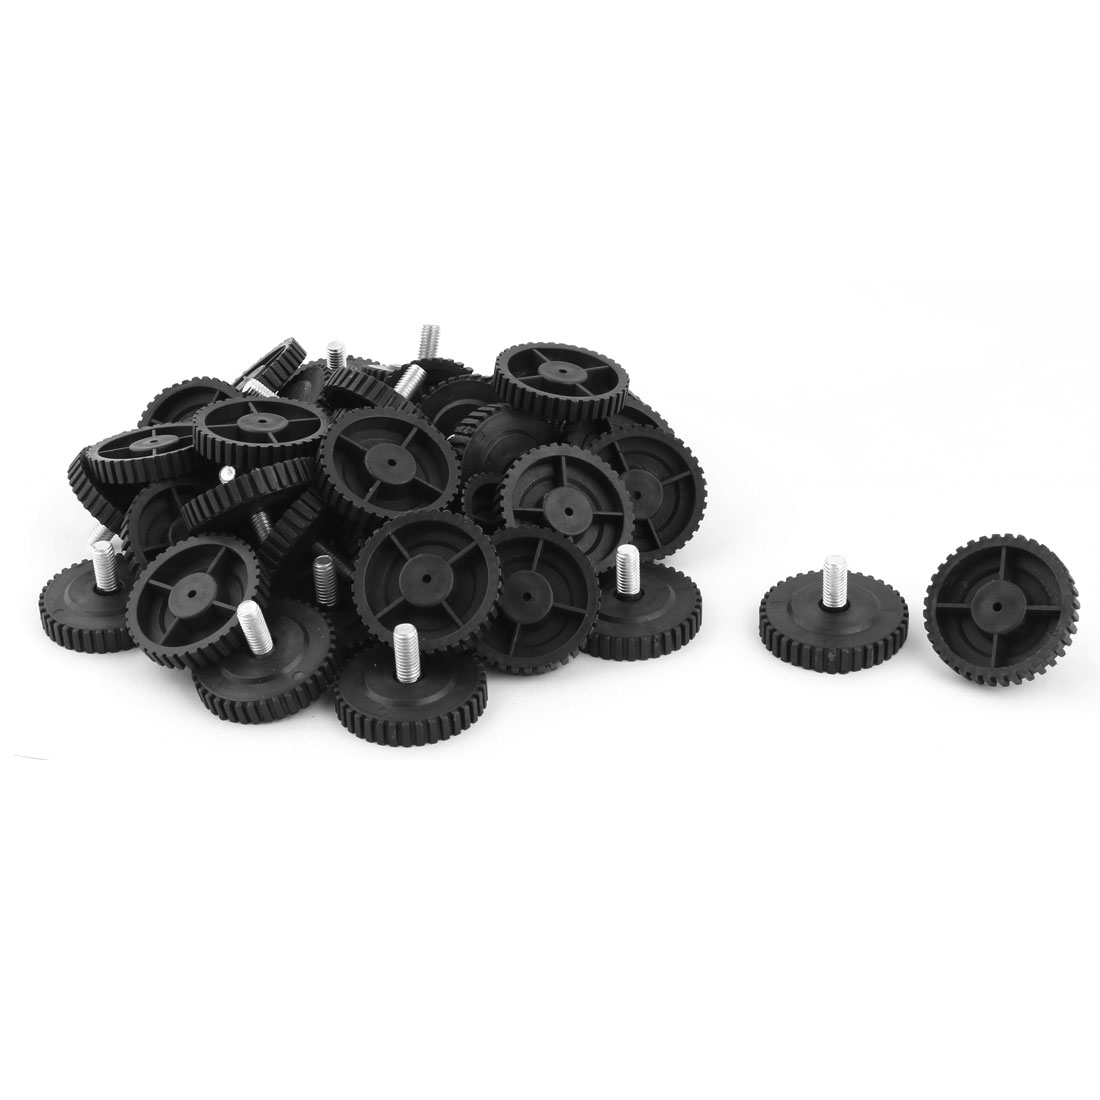 Home Round Skid Resistant Furniture Leg Protector Leveling Foot Nail Black 50pcs